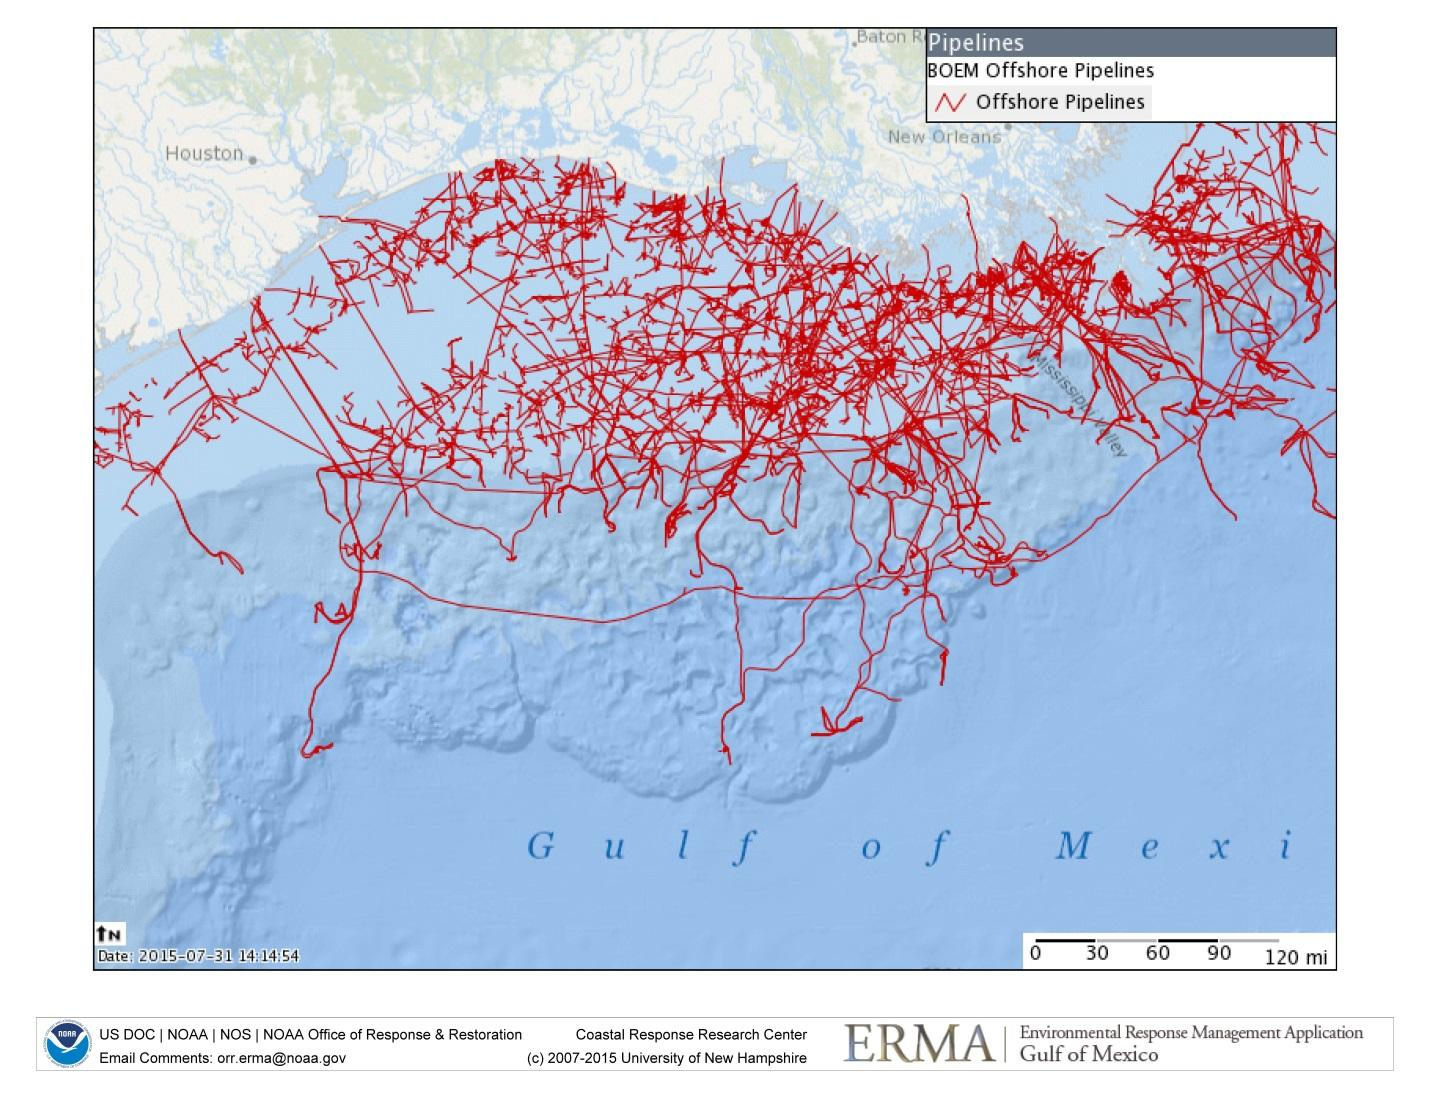 Map of oil pipelines in the Gulf of Mexico taken from NOAA's ERMA application, which is used to help plan for, and respond to, marine environmental disasters.